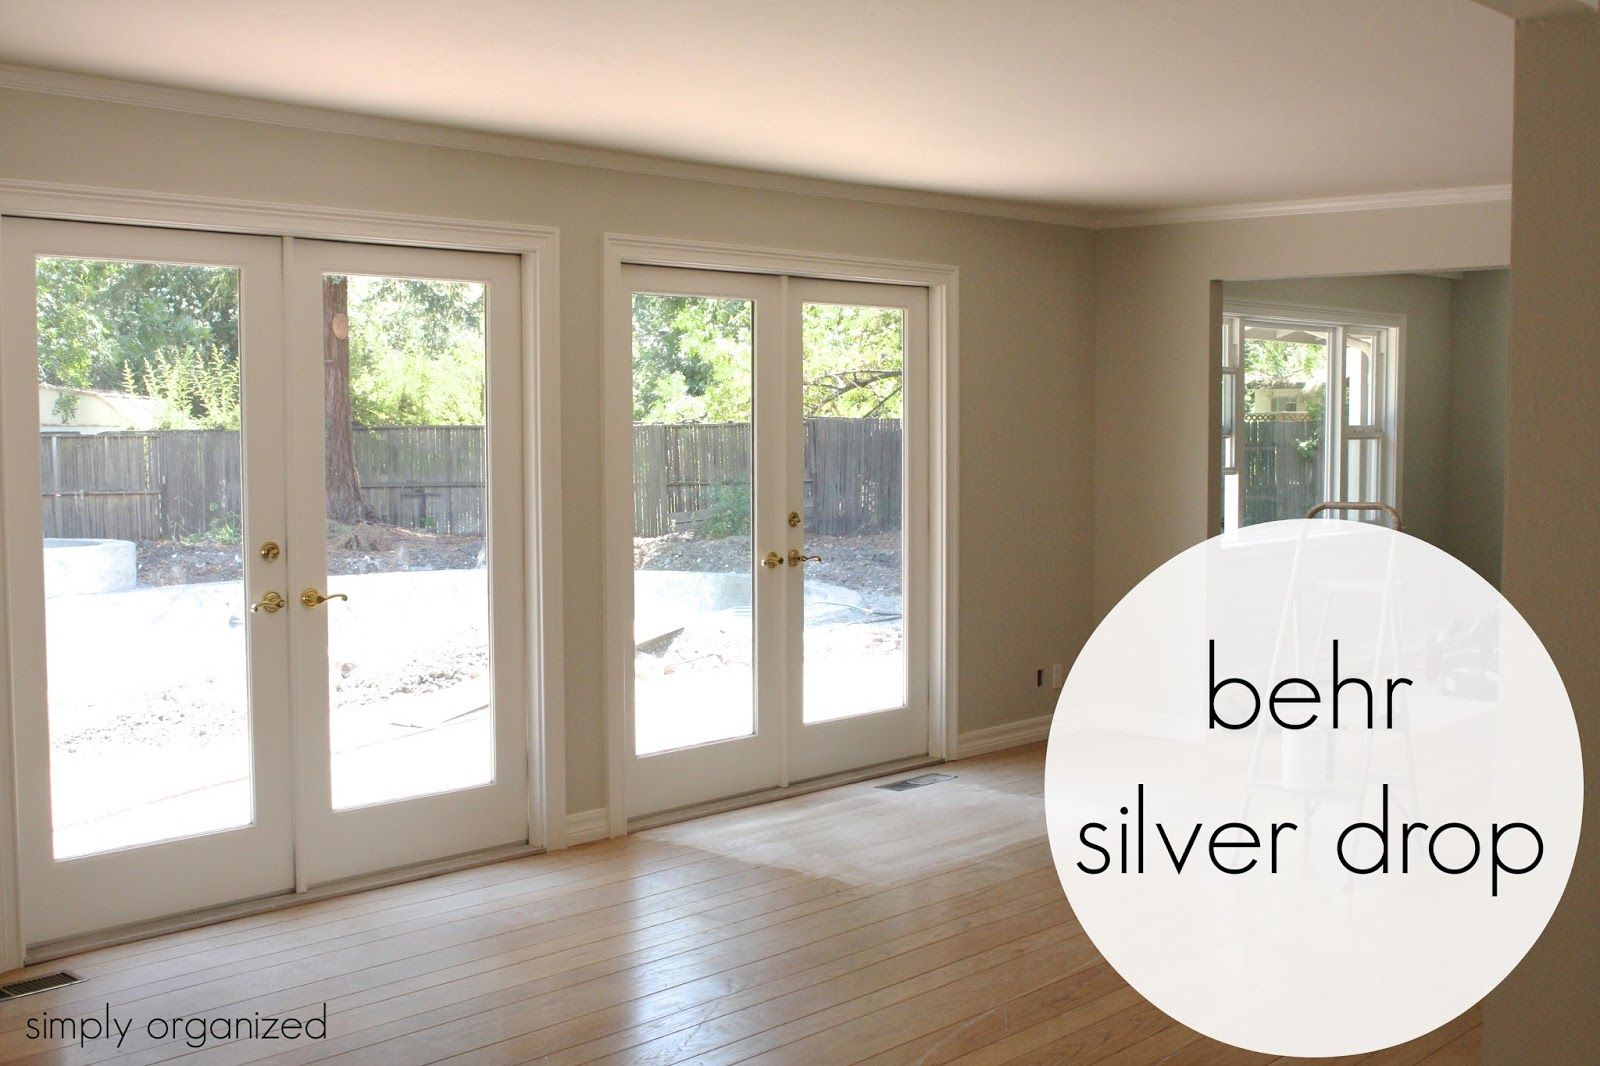 Simply Organized: My Home Interior Paint Color Palate (BEHR Silver Drop)